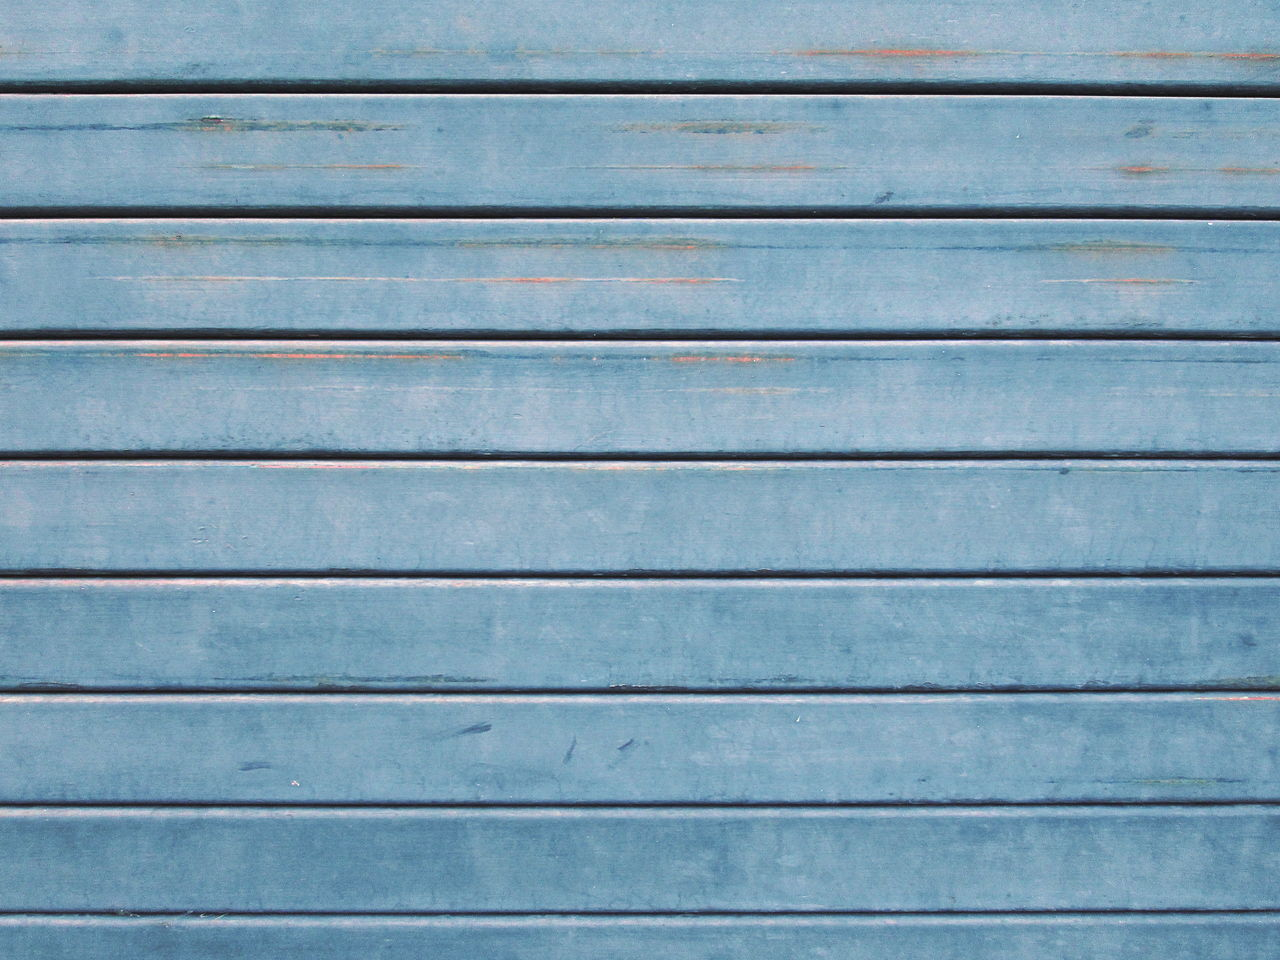 backgrounds, pattern, textured, striped, wood - material, copy space, close-up, unhygienic, wood paneling, full frame, paint, outdoors, security system, no people, corrugated iron, day